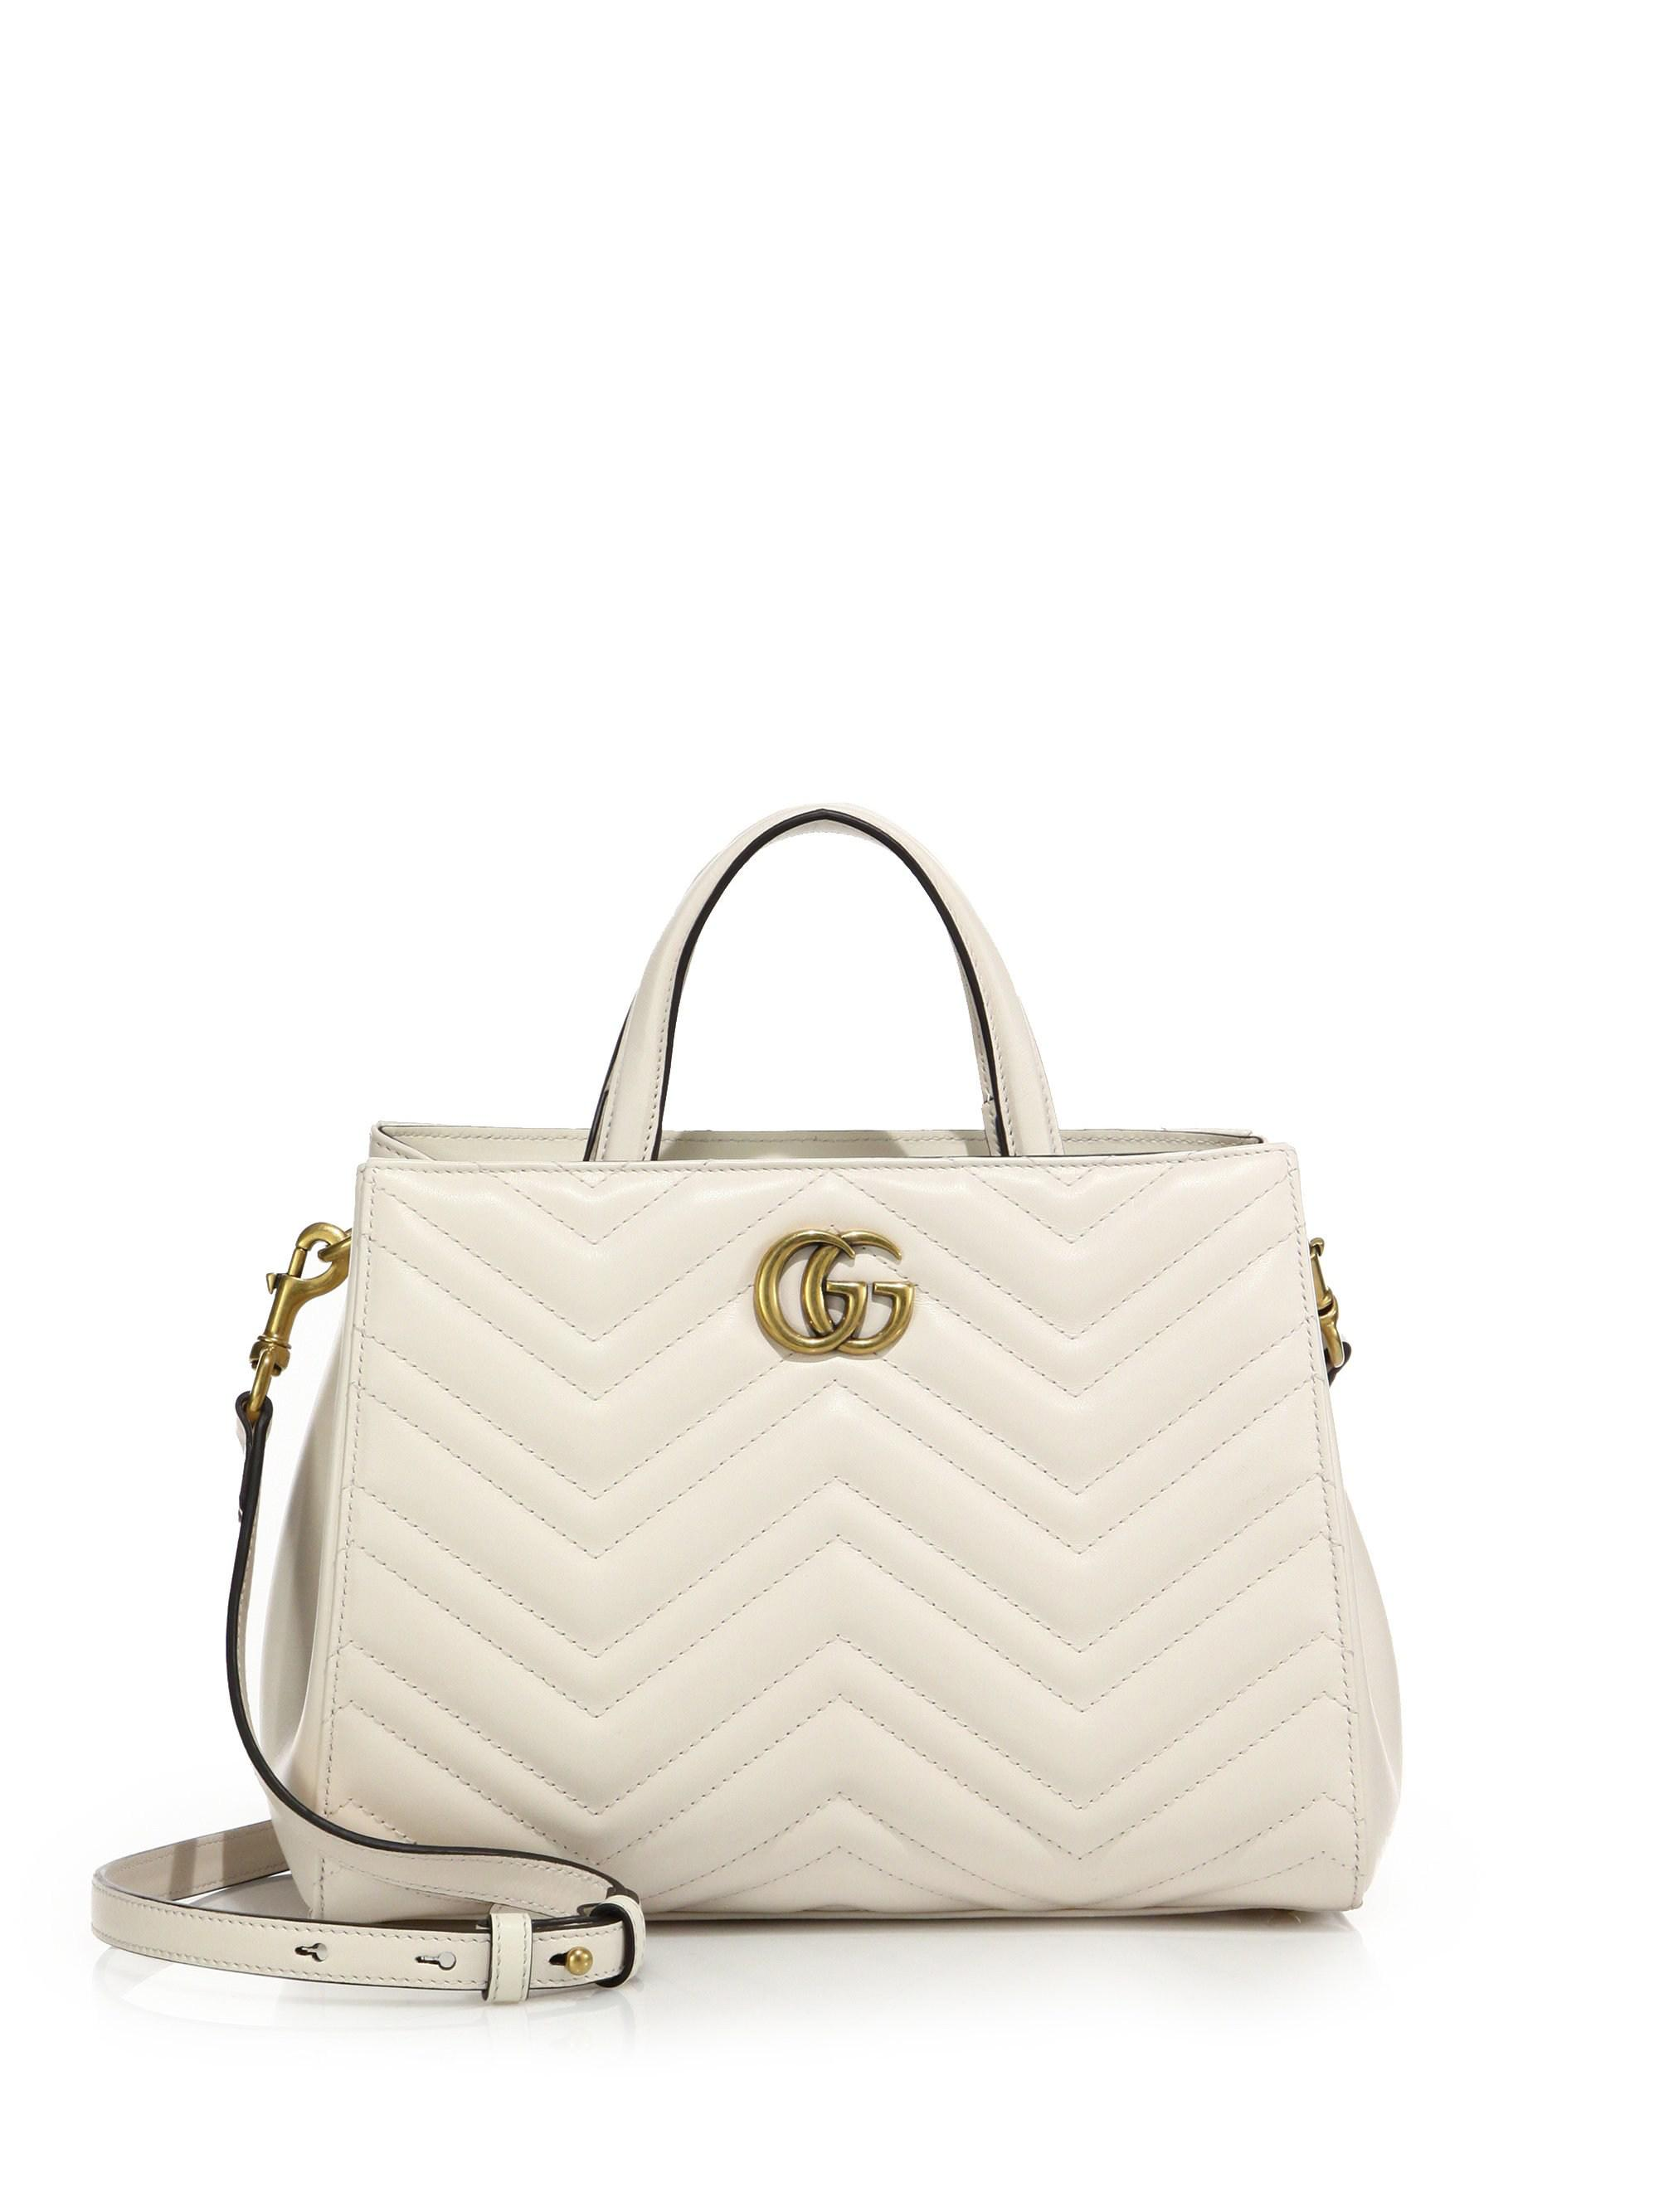 Lyst - Gucci GG Marmont Matelasse Leather Top-Handle Tote in White 11735d6687c73